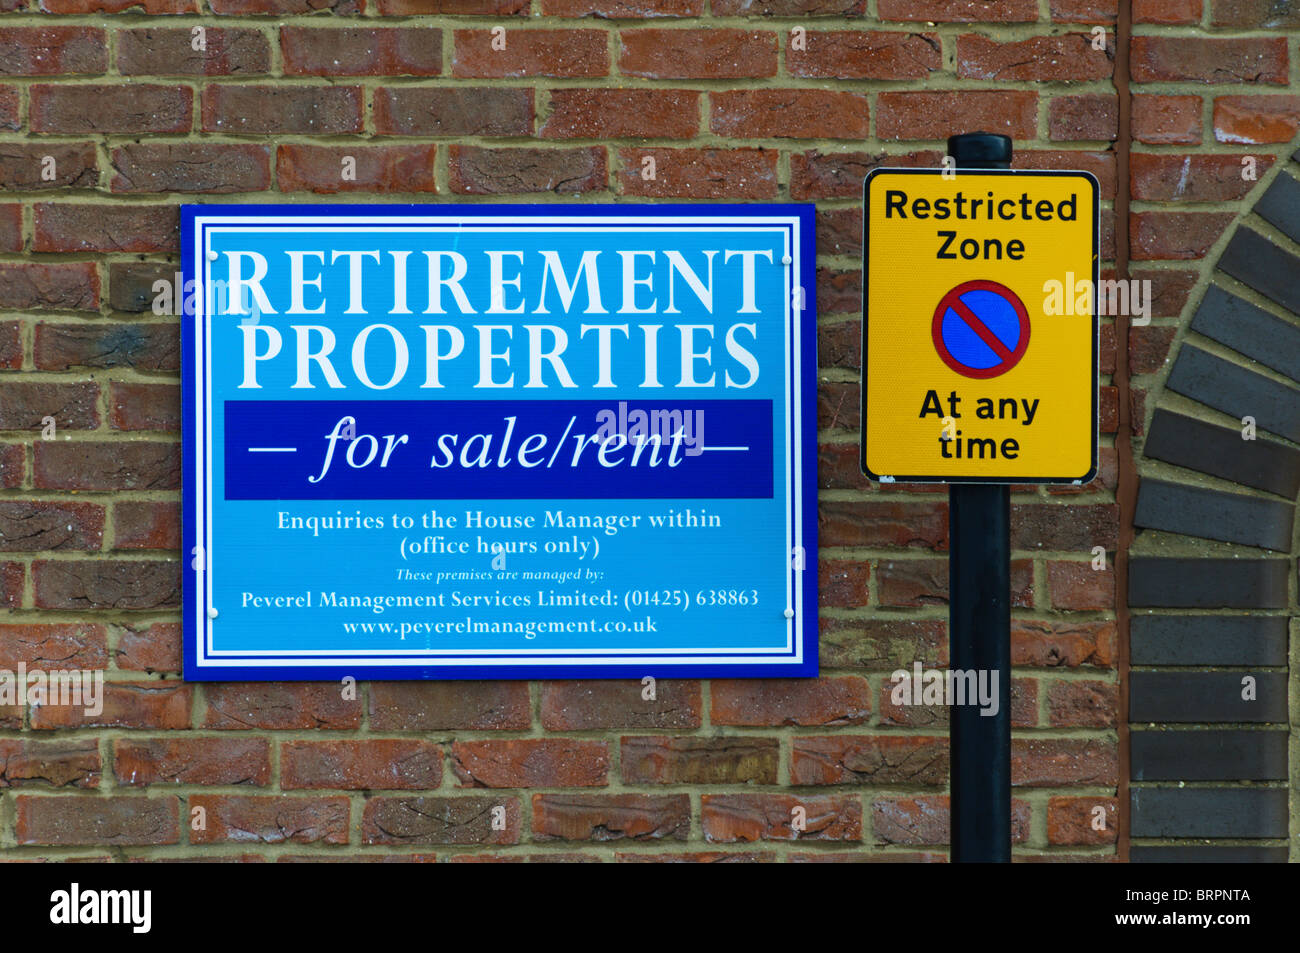 A sign for Retirement Properties Stock Photo: 31847546 - Alamy